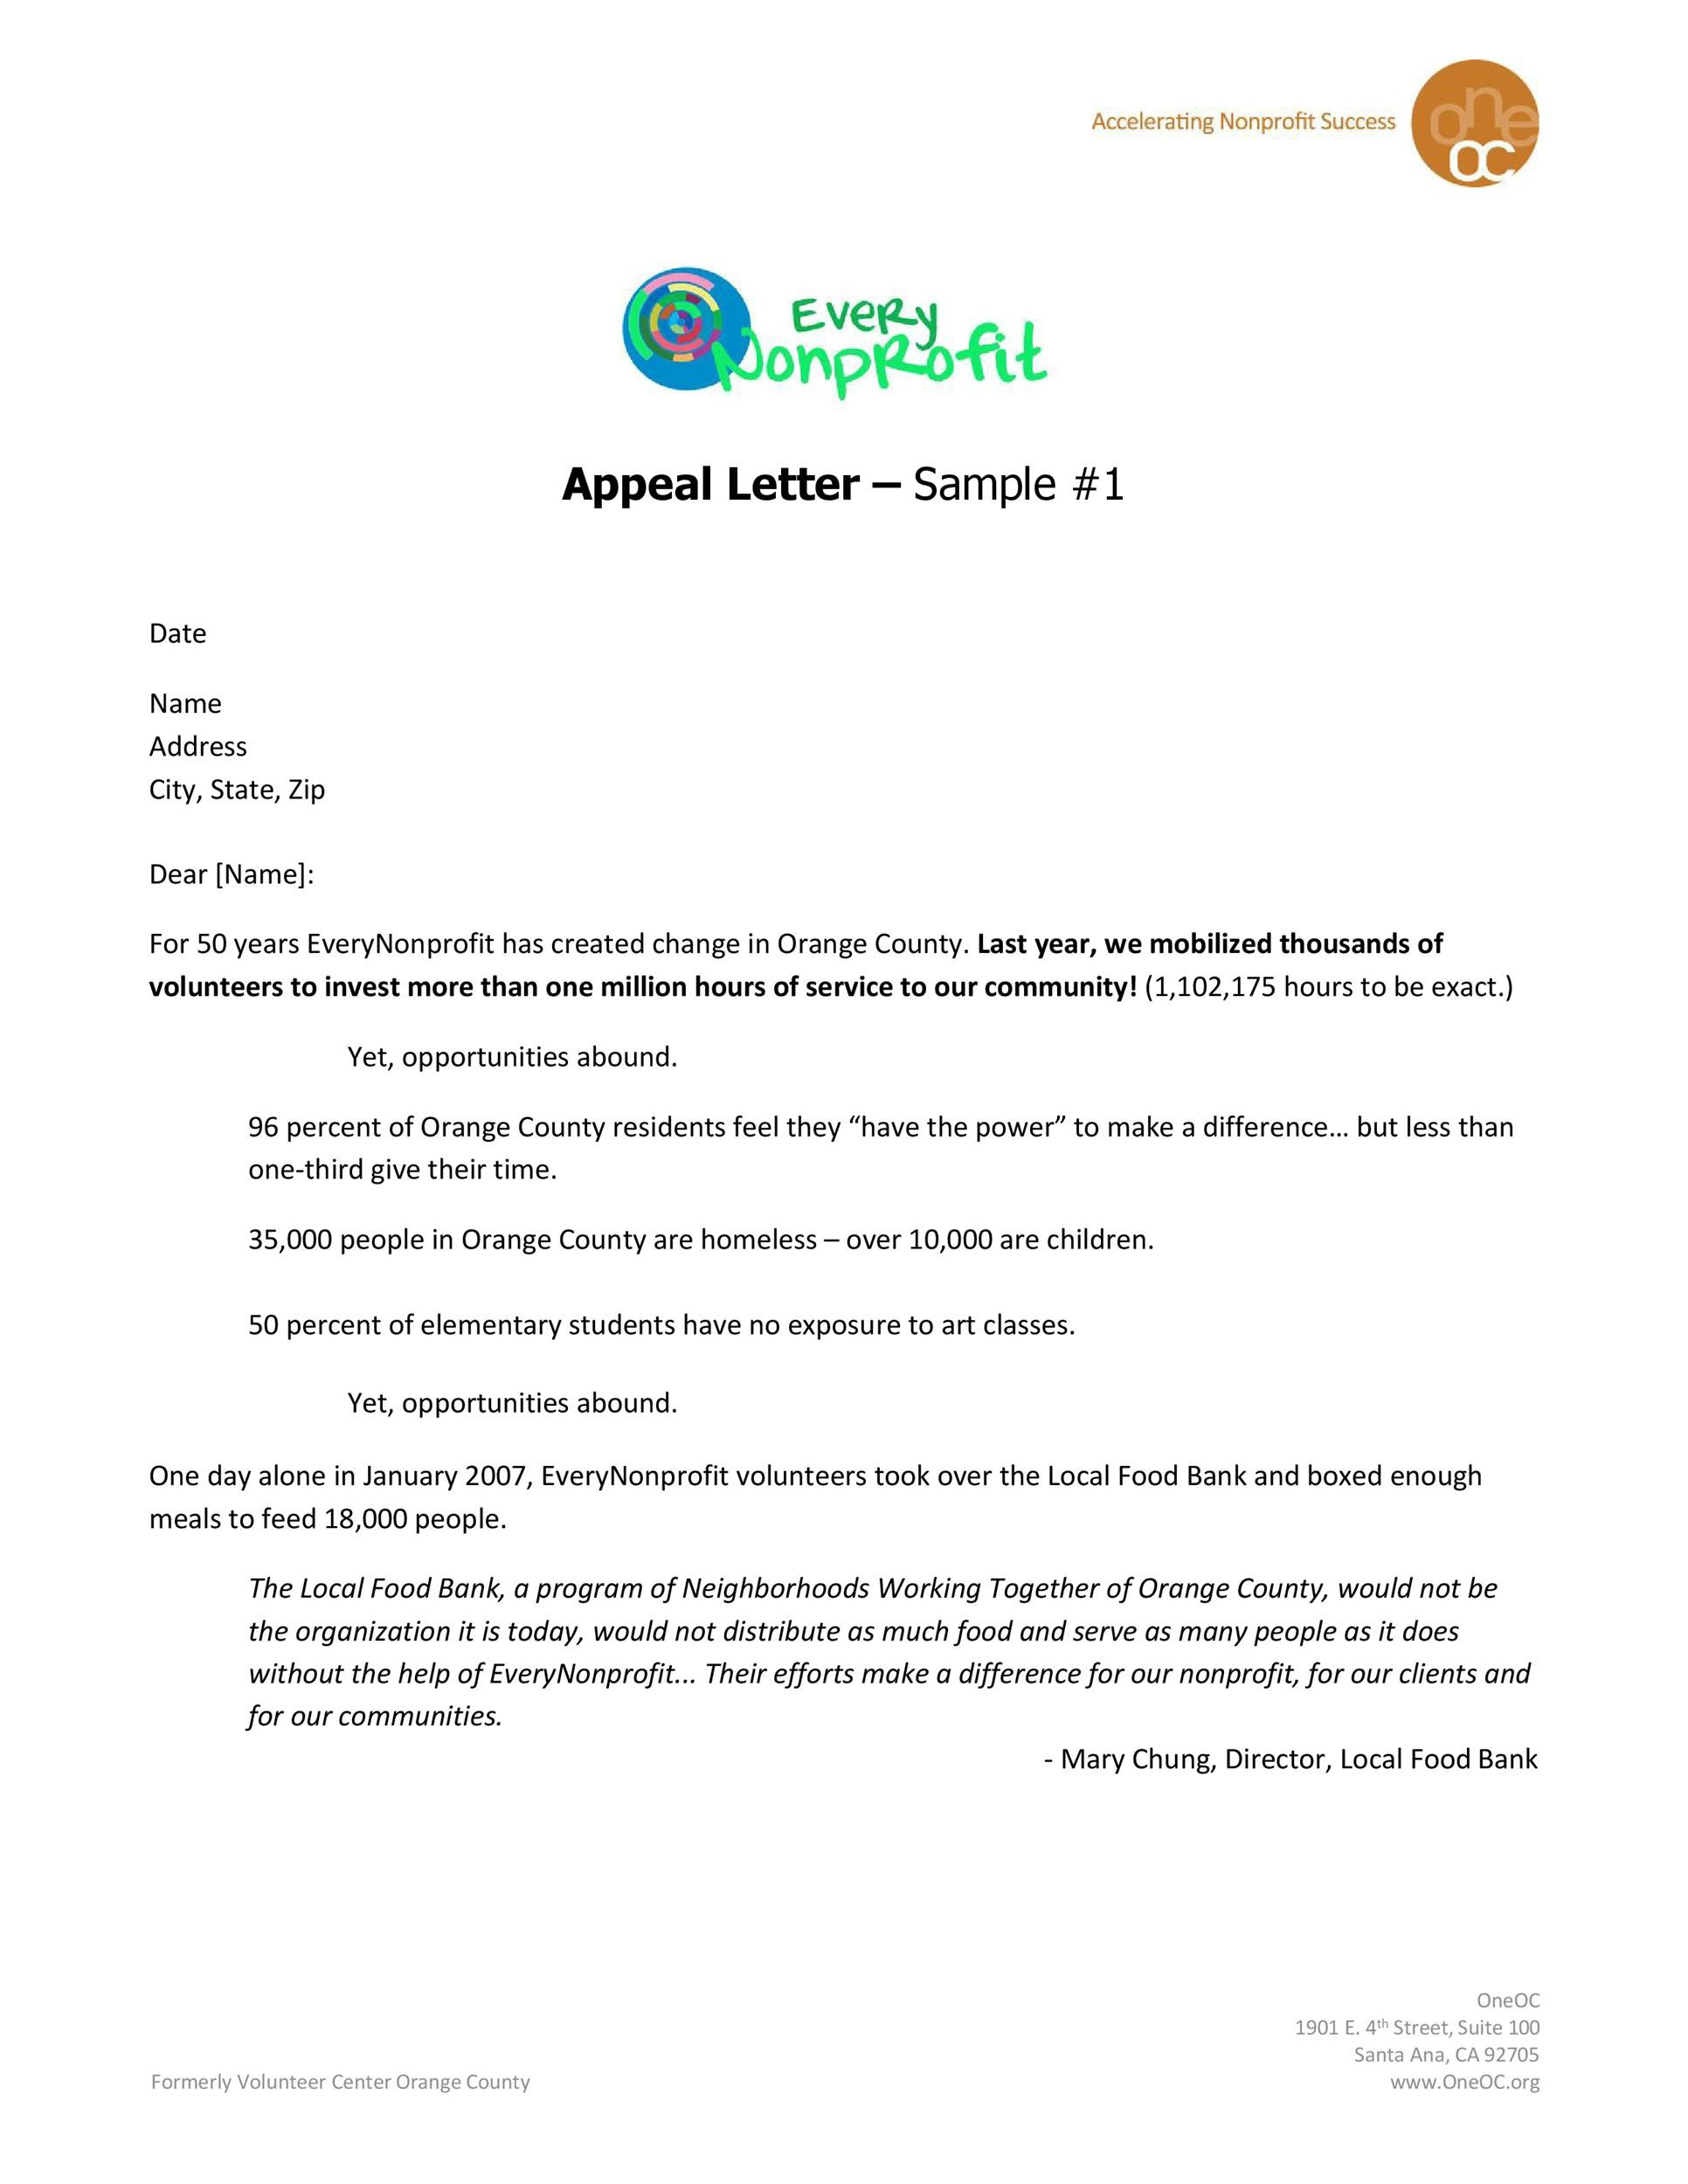 Free appeal letter 08